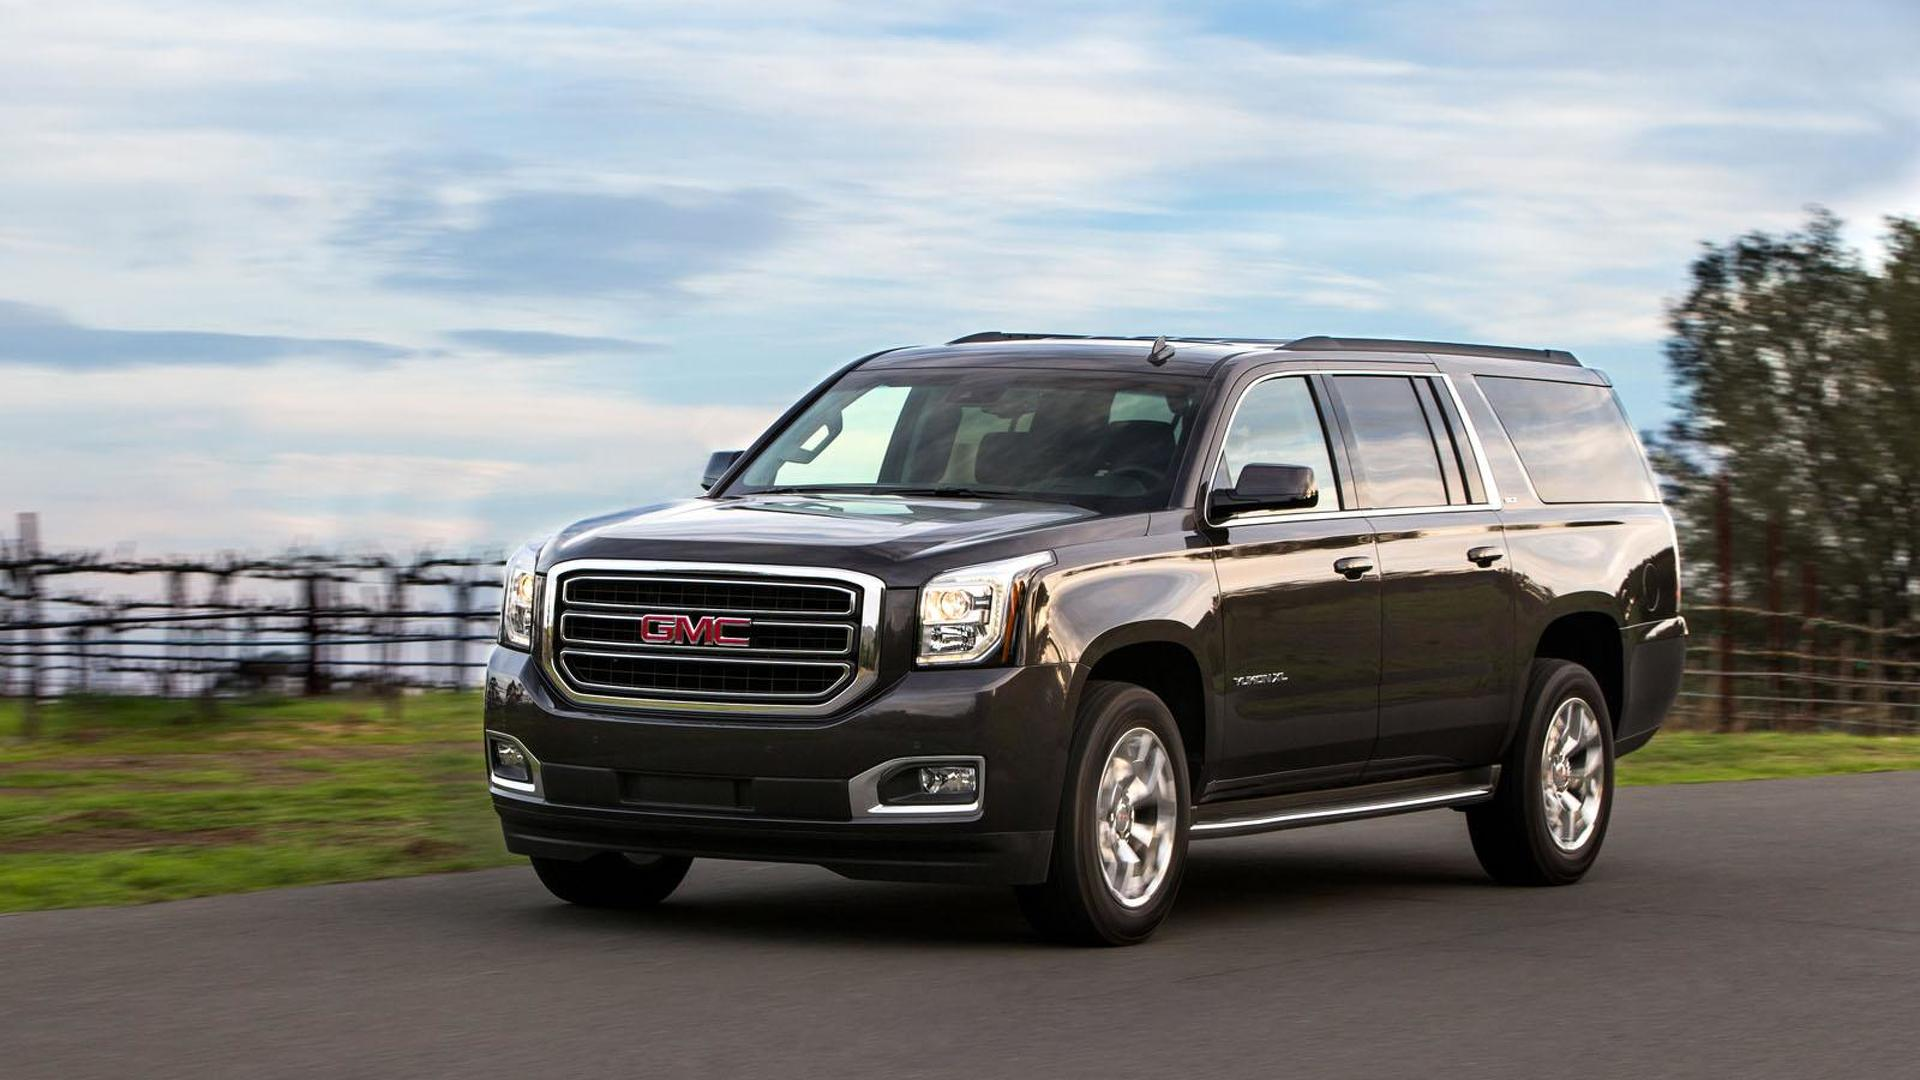 jcr images pressroom competitive sectioncontainer media offers coo content chevrolet denali photos pages rightpar yukon me us news en galleryphotogrid in detail states uae gmc par range united